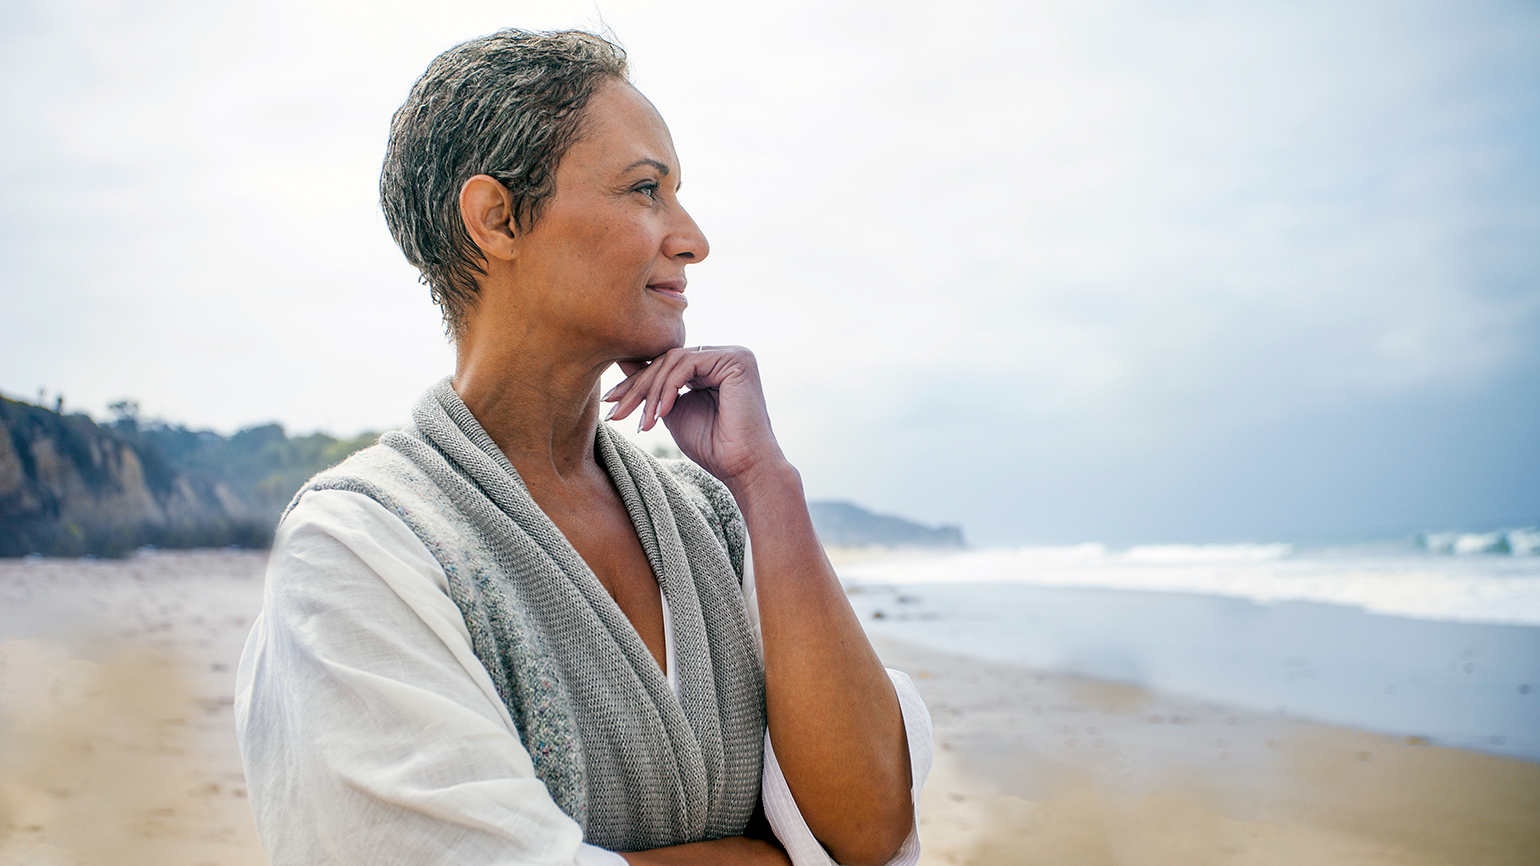 A contented woman gazes thoughtfully out at the ocean